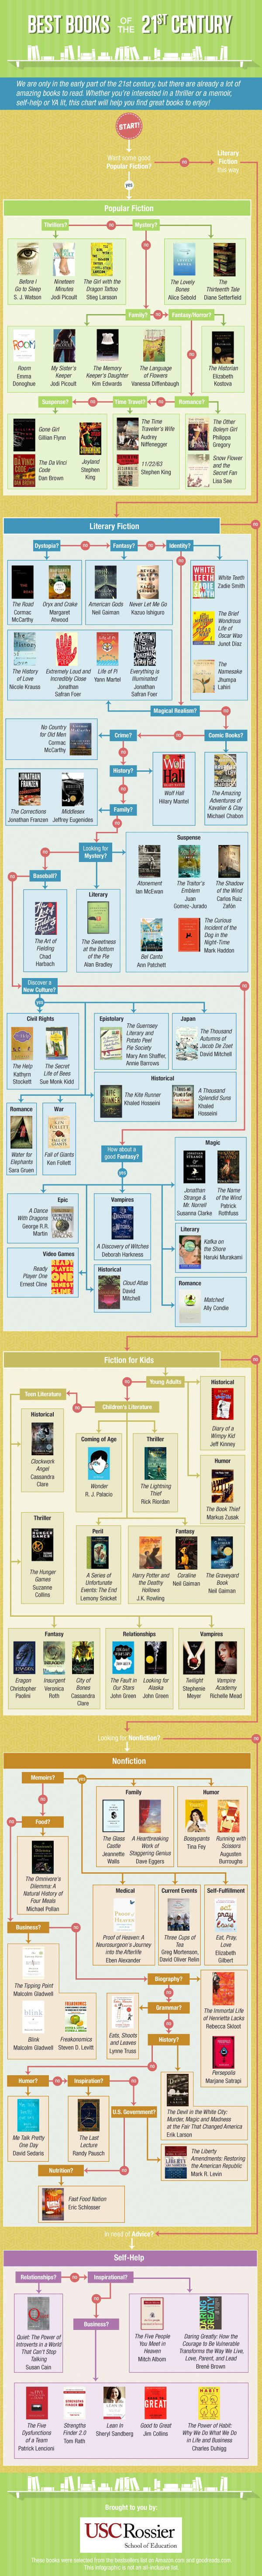 Best Books of the 21st Century (Infographic)?